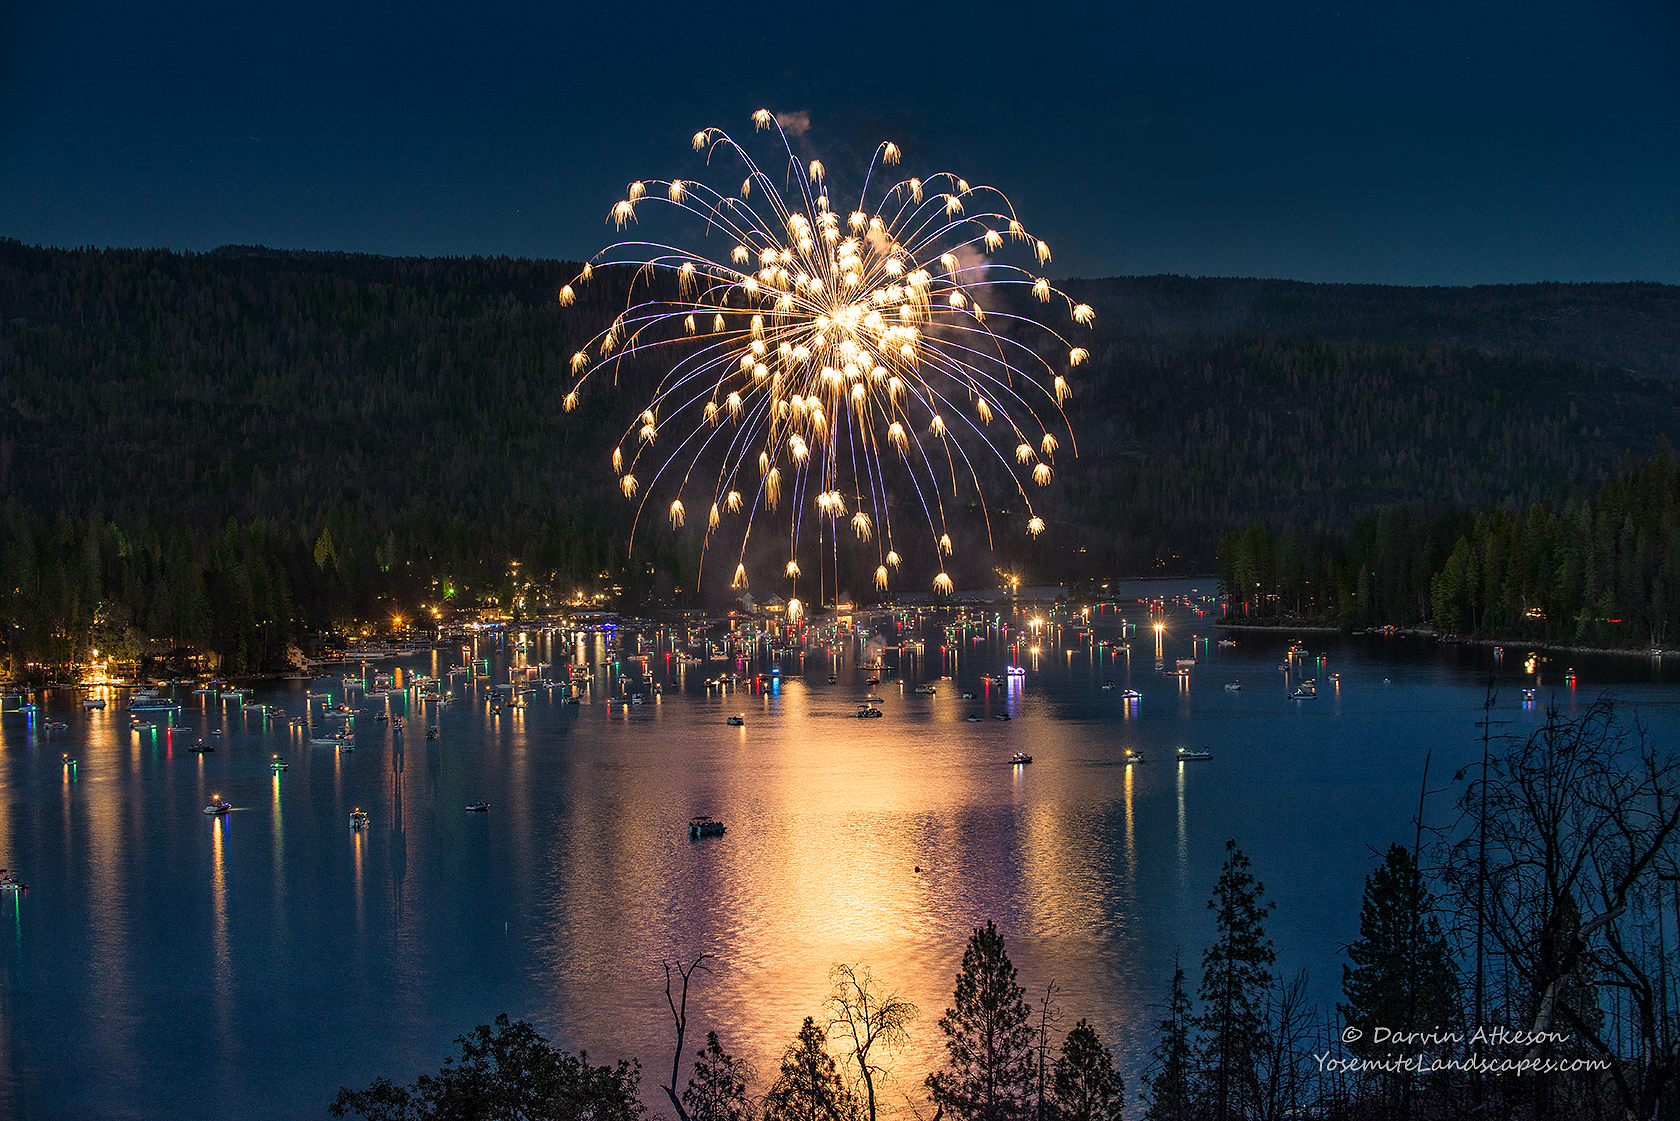 Bass Lake Fireworks by Darvin Atkeson